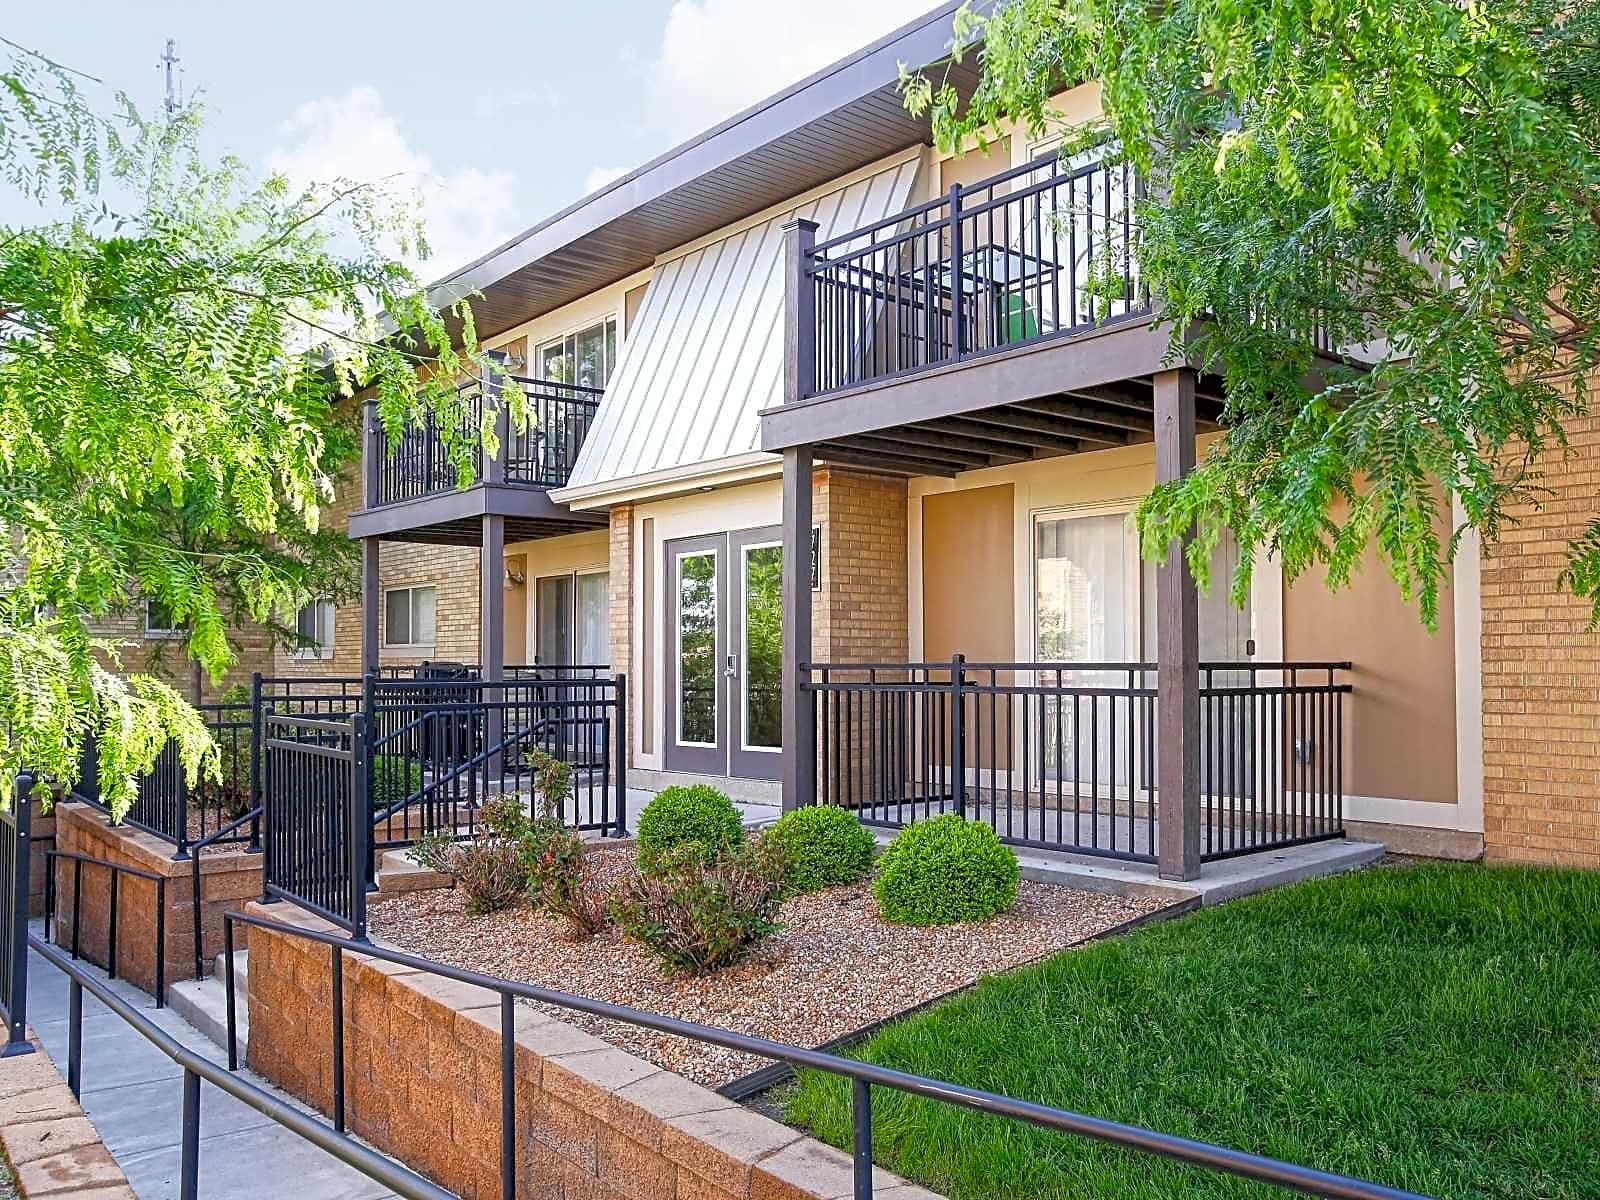 Apartments Near IUPUI Indiana Flats & Townhomes for Indiana University-Purdue University Students in Indianapolis, IN